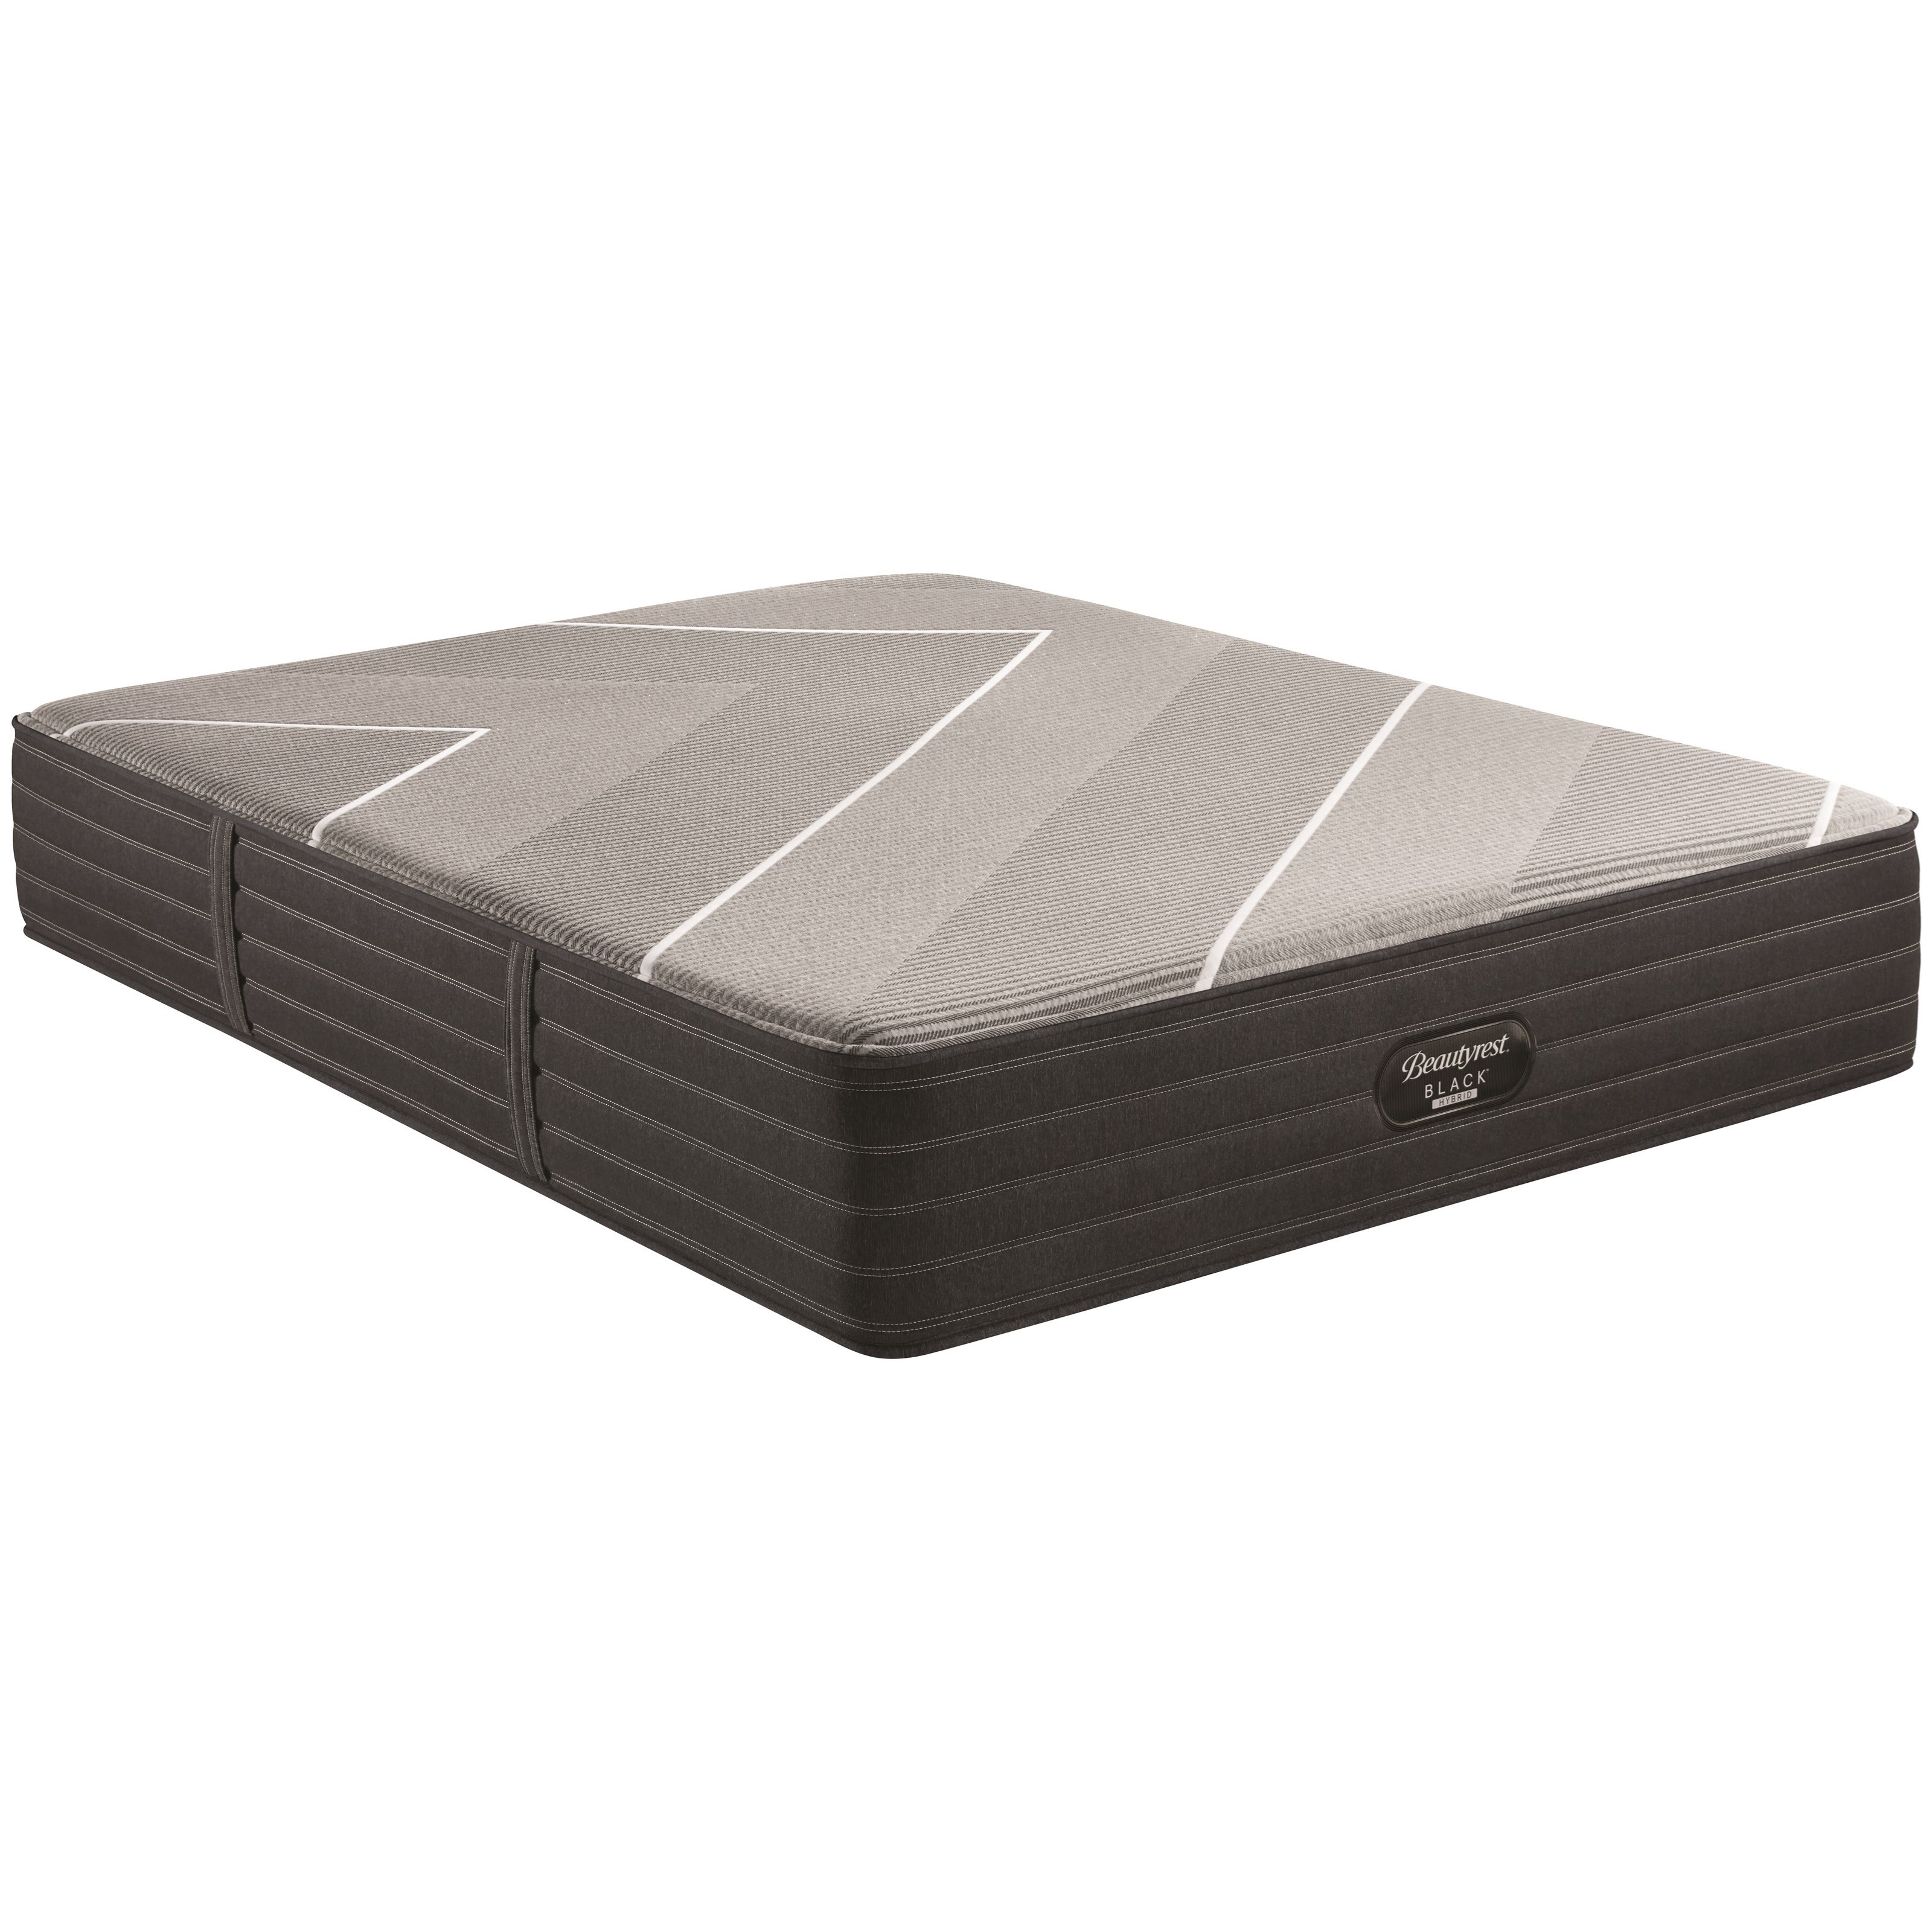 "X-Class Hybrid Plush Full 13 1/2"" Plush Hybrid Mattress by Beautyrest at Darvin Furniture"